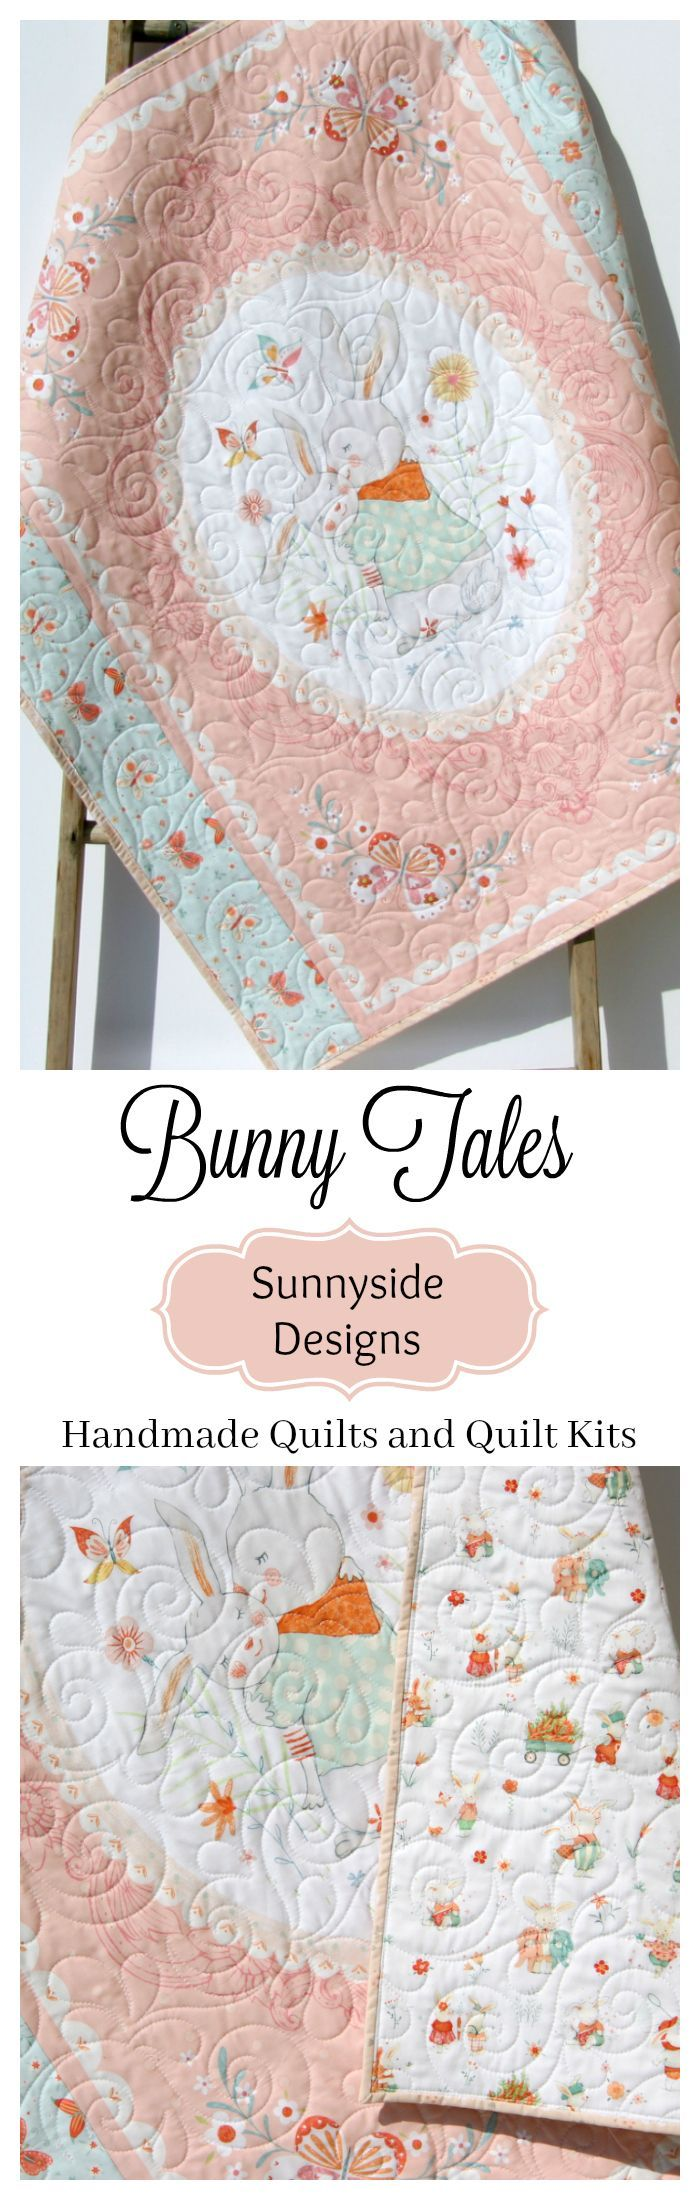 Handmade Bunny Baby Quilt, Rabbits Mommy and Me, Pink Coral Blue Butterflies, Baby Quilt Kit, Beginner Panel Quilt Kit, Baby Shower Gift, Bunny Tales Fabrics, Handmade Quilt for Sale by Sunnyside Designs